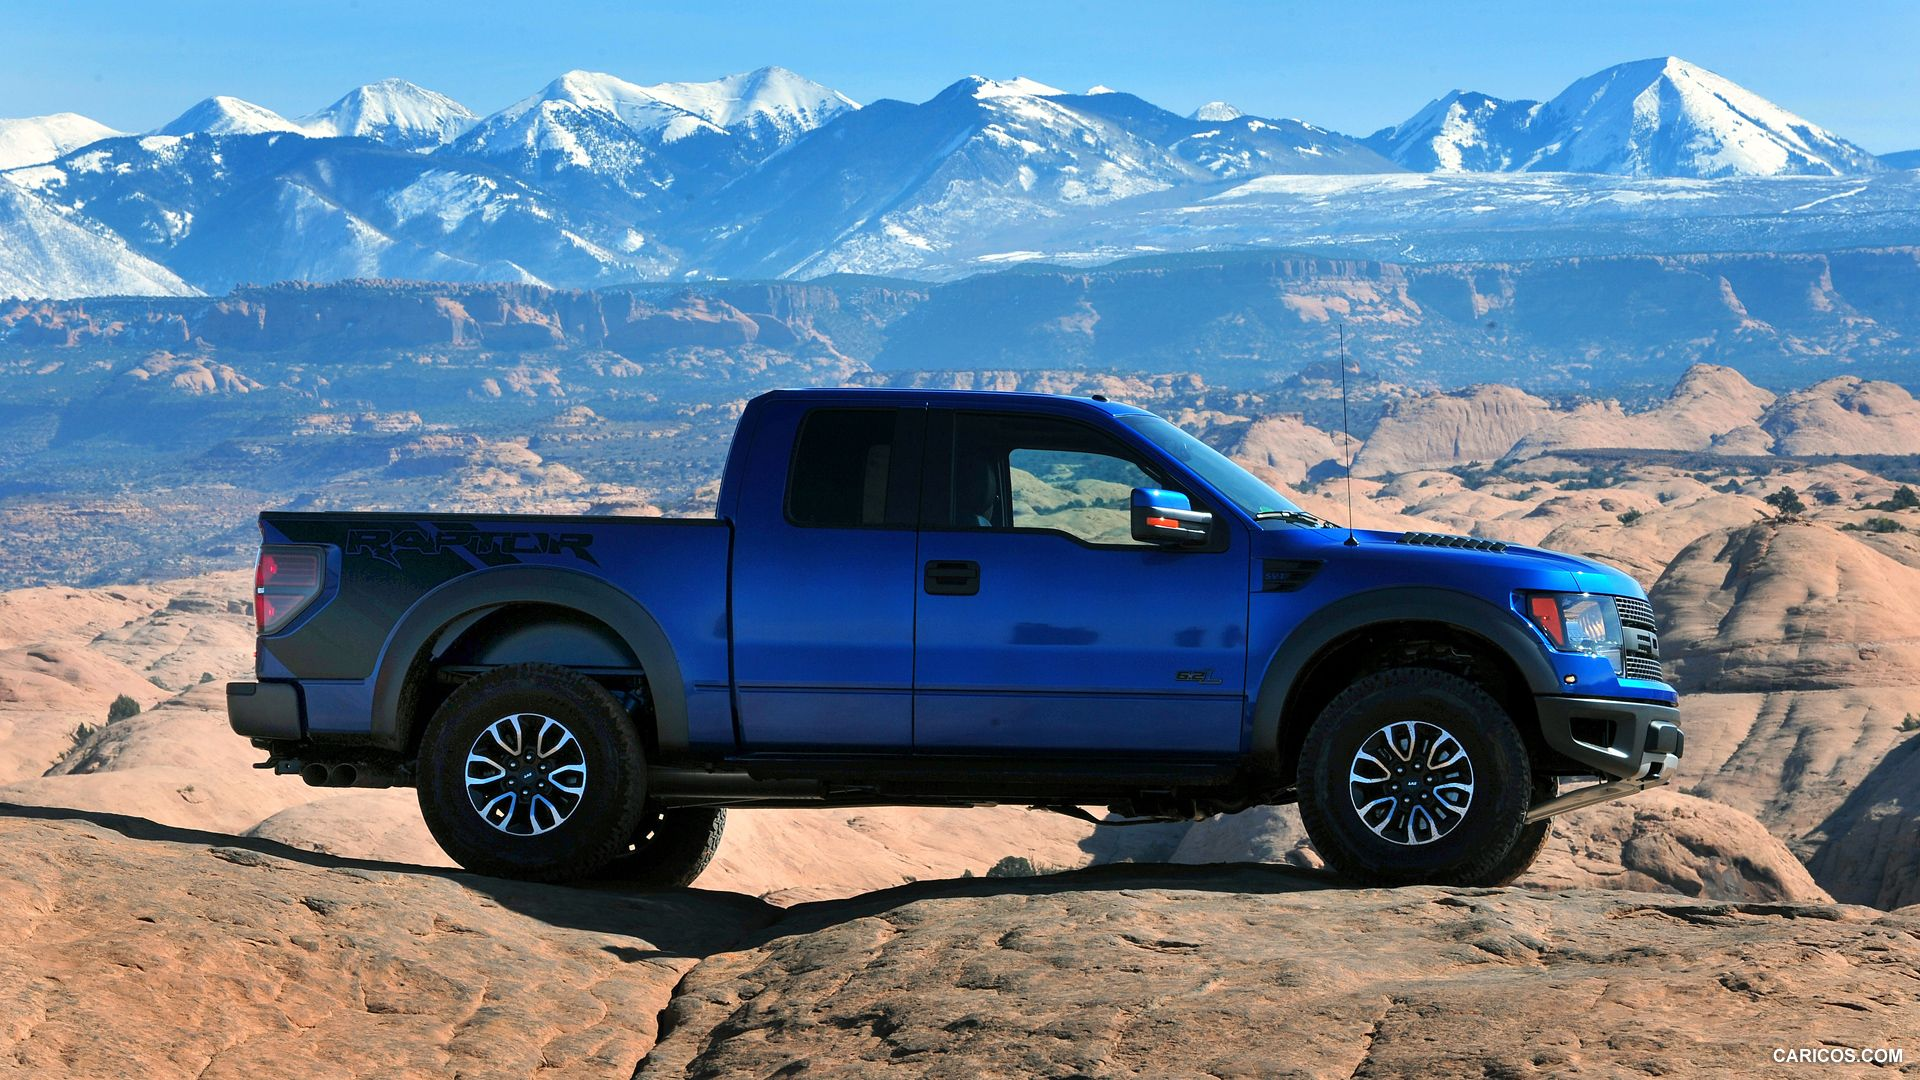 2012 Ford F150 SVT Raptor Wallpaper